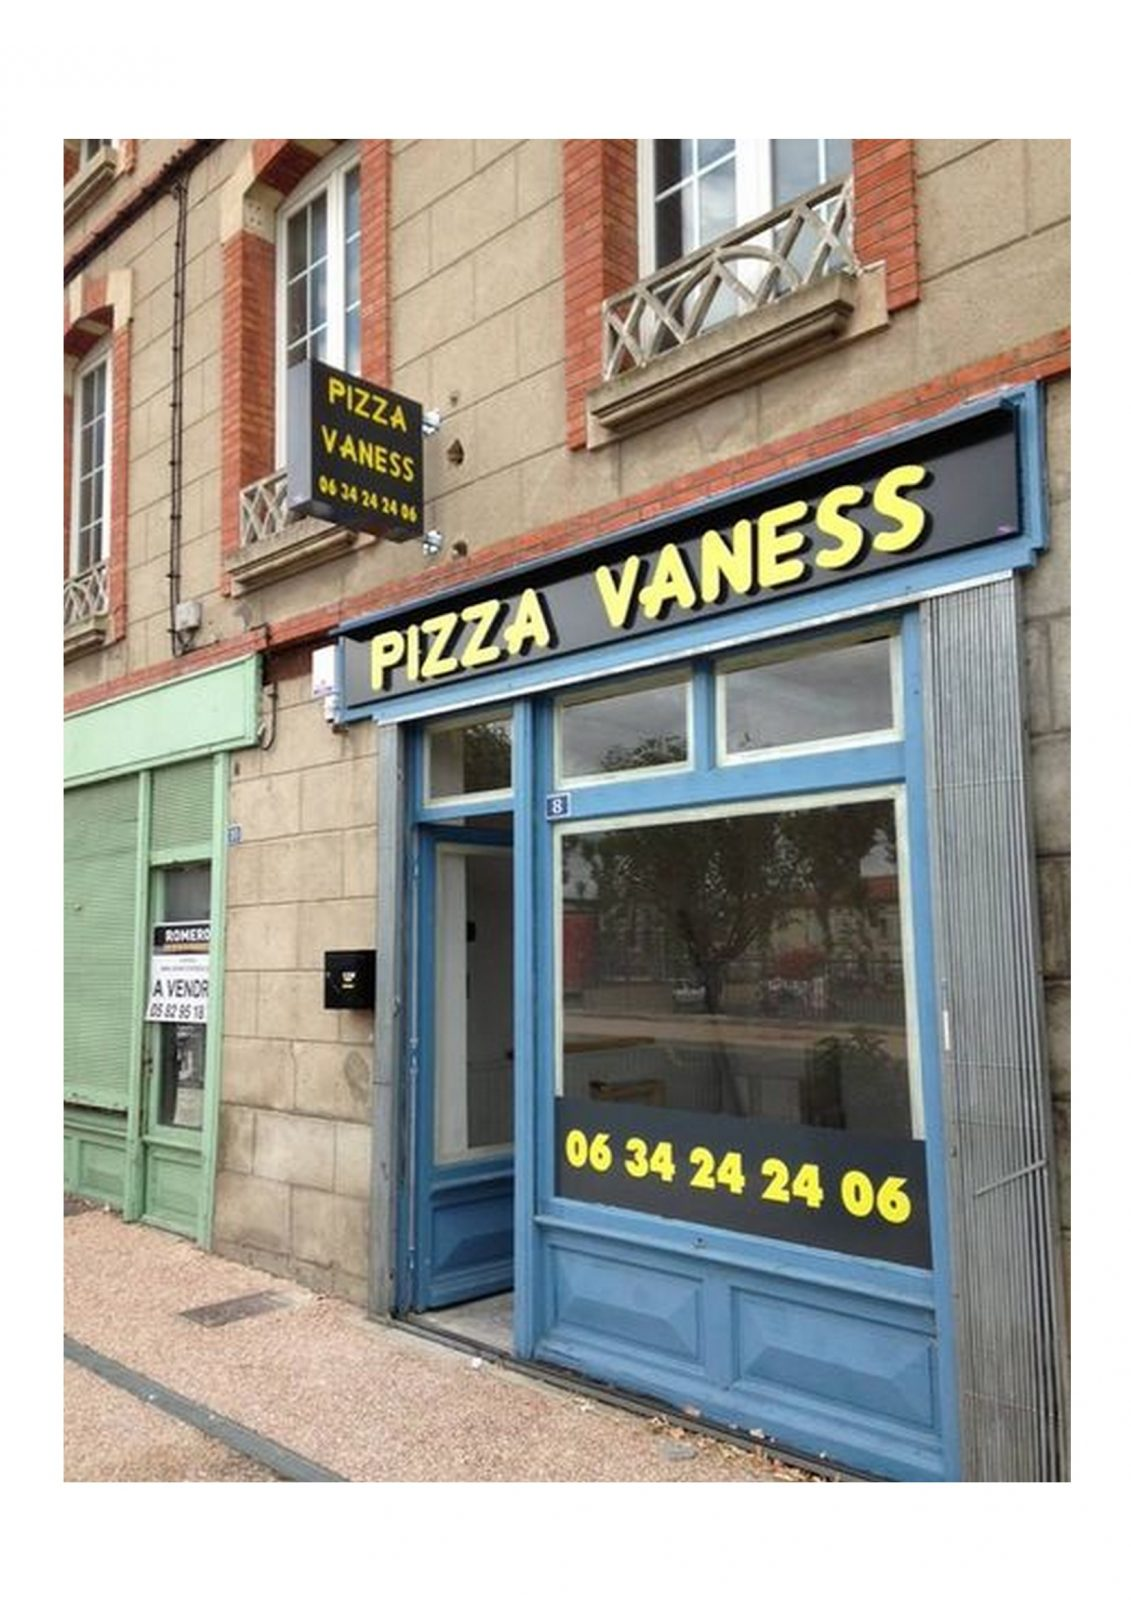 Pizza Vaness – Saint Paul Cap de Joux